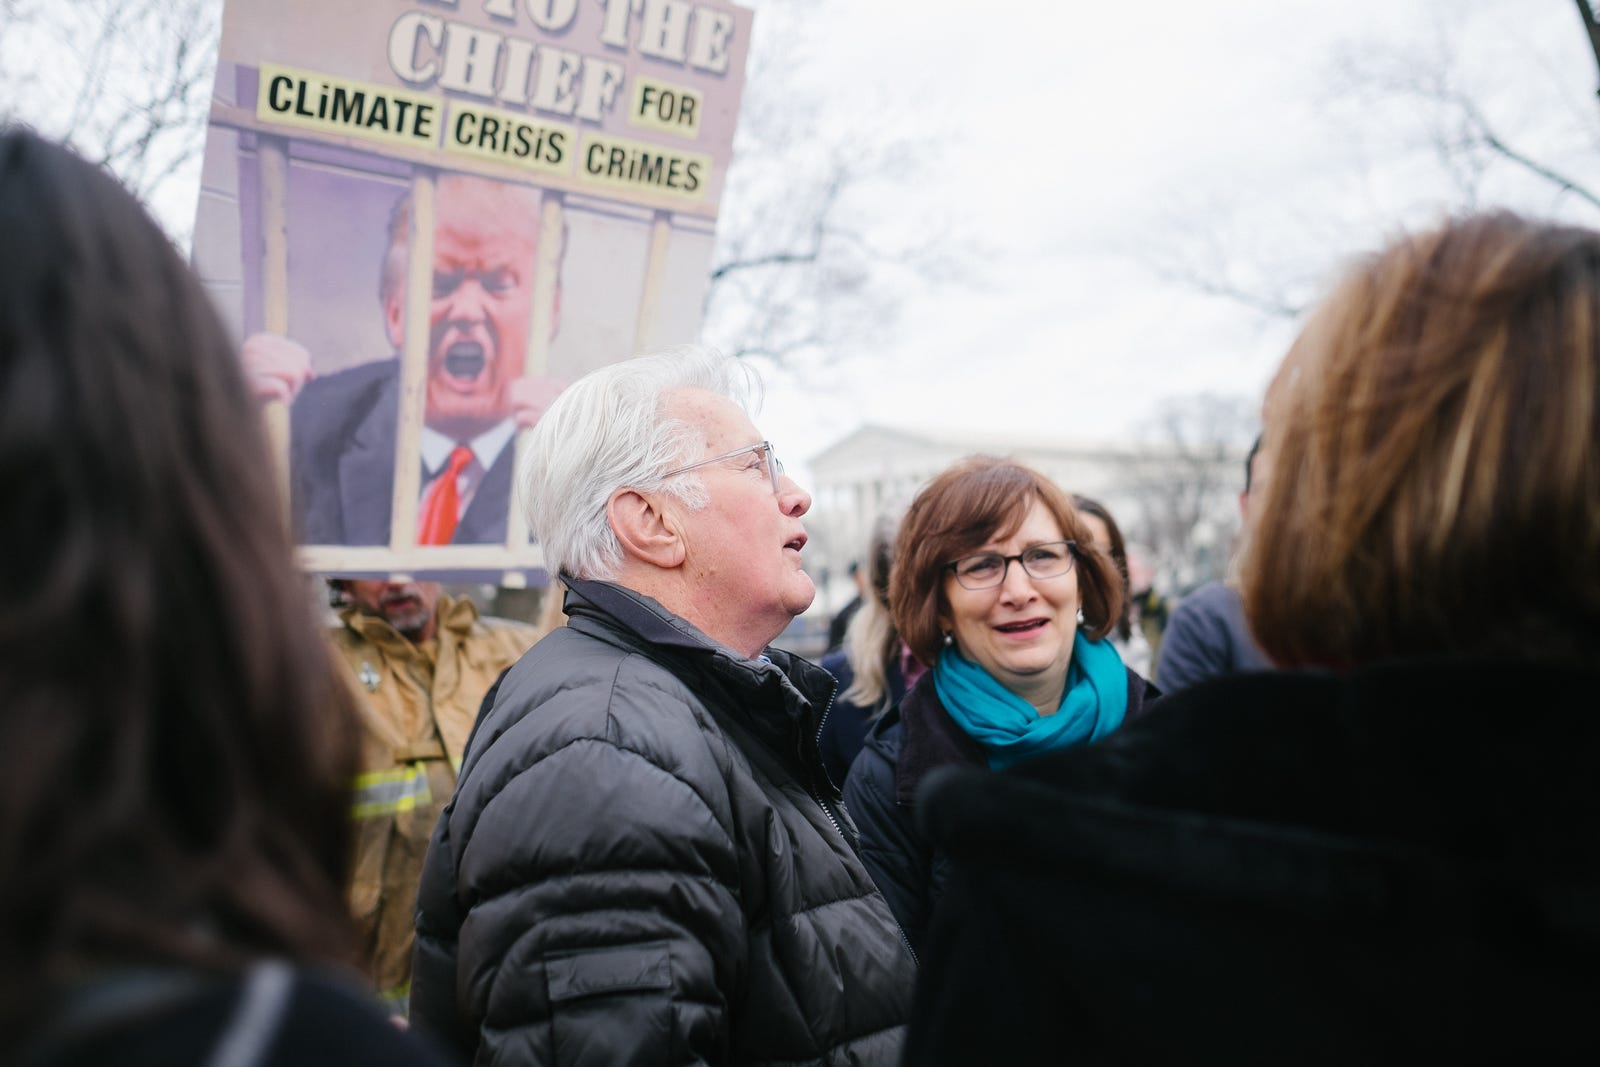 Martin Sheen talking with Representatives Kathy Castor and Suzanne Bonamici, a chair and member of the House Select Committee on the Climate Crisis